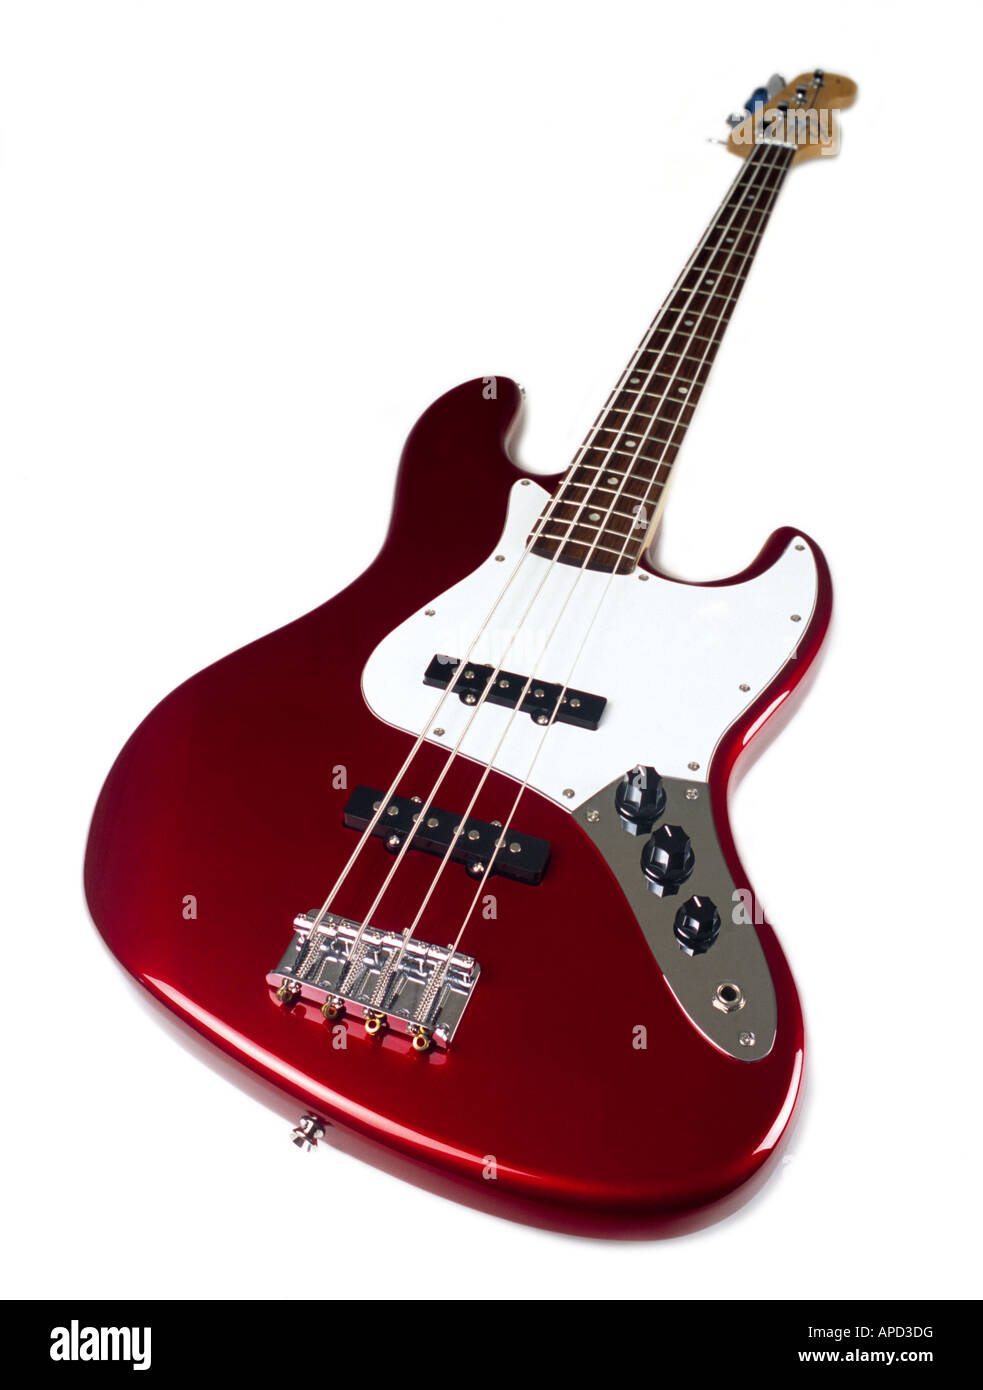 Red bass guitar. - Stock Image